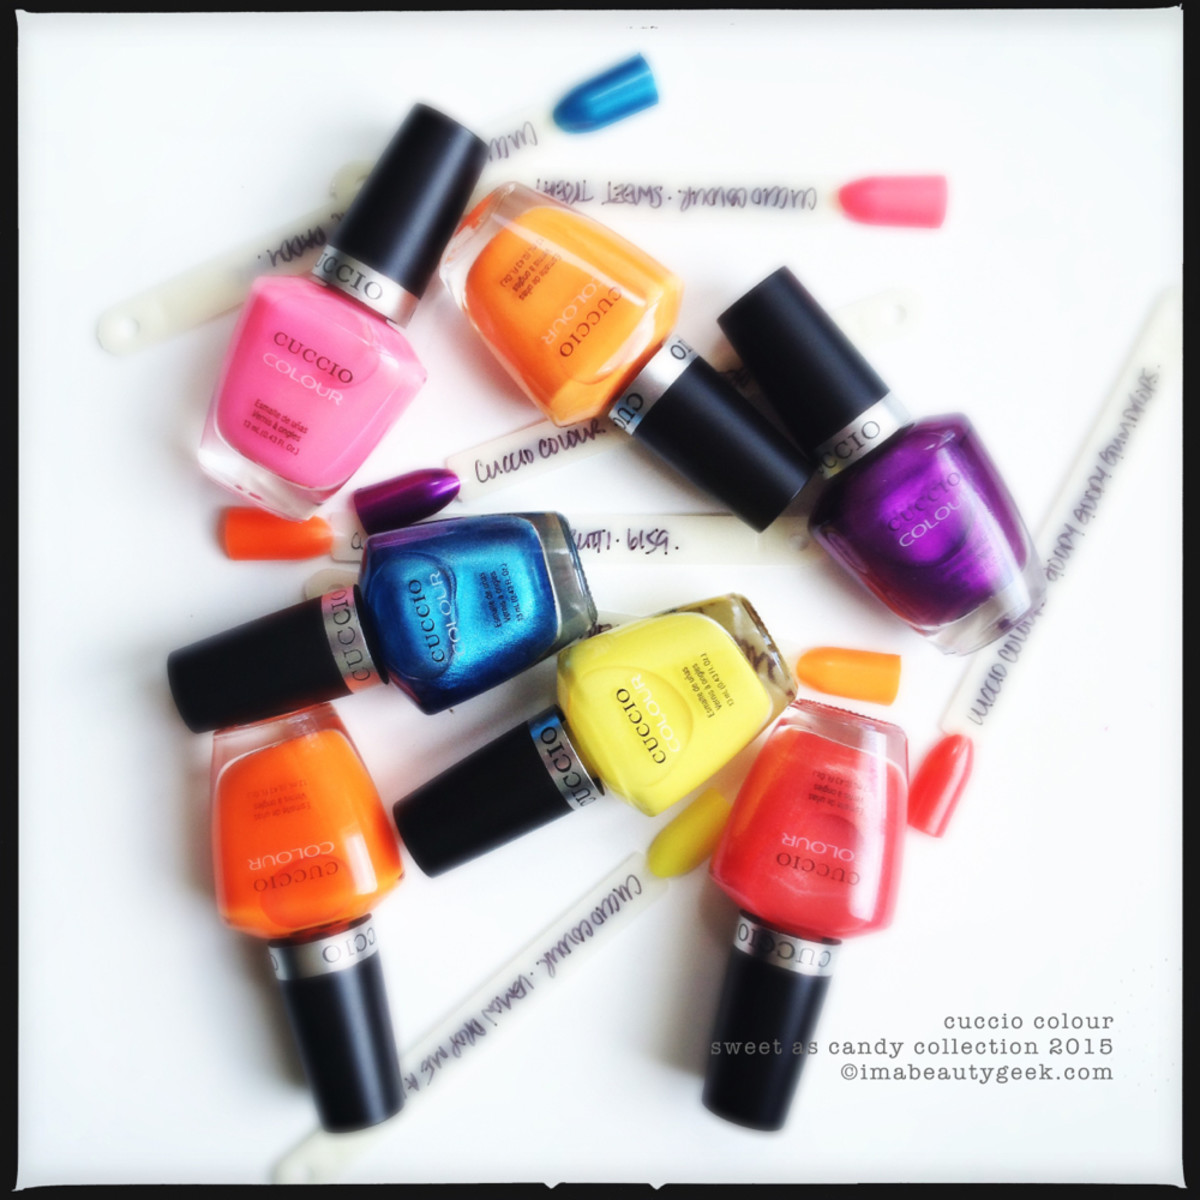 Cuccio Colour Nail Polish Sweet as Candy Collection 2015